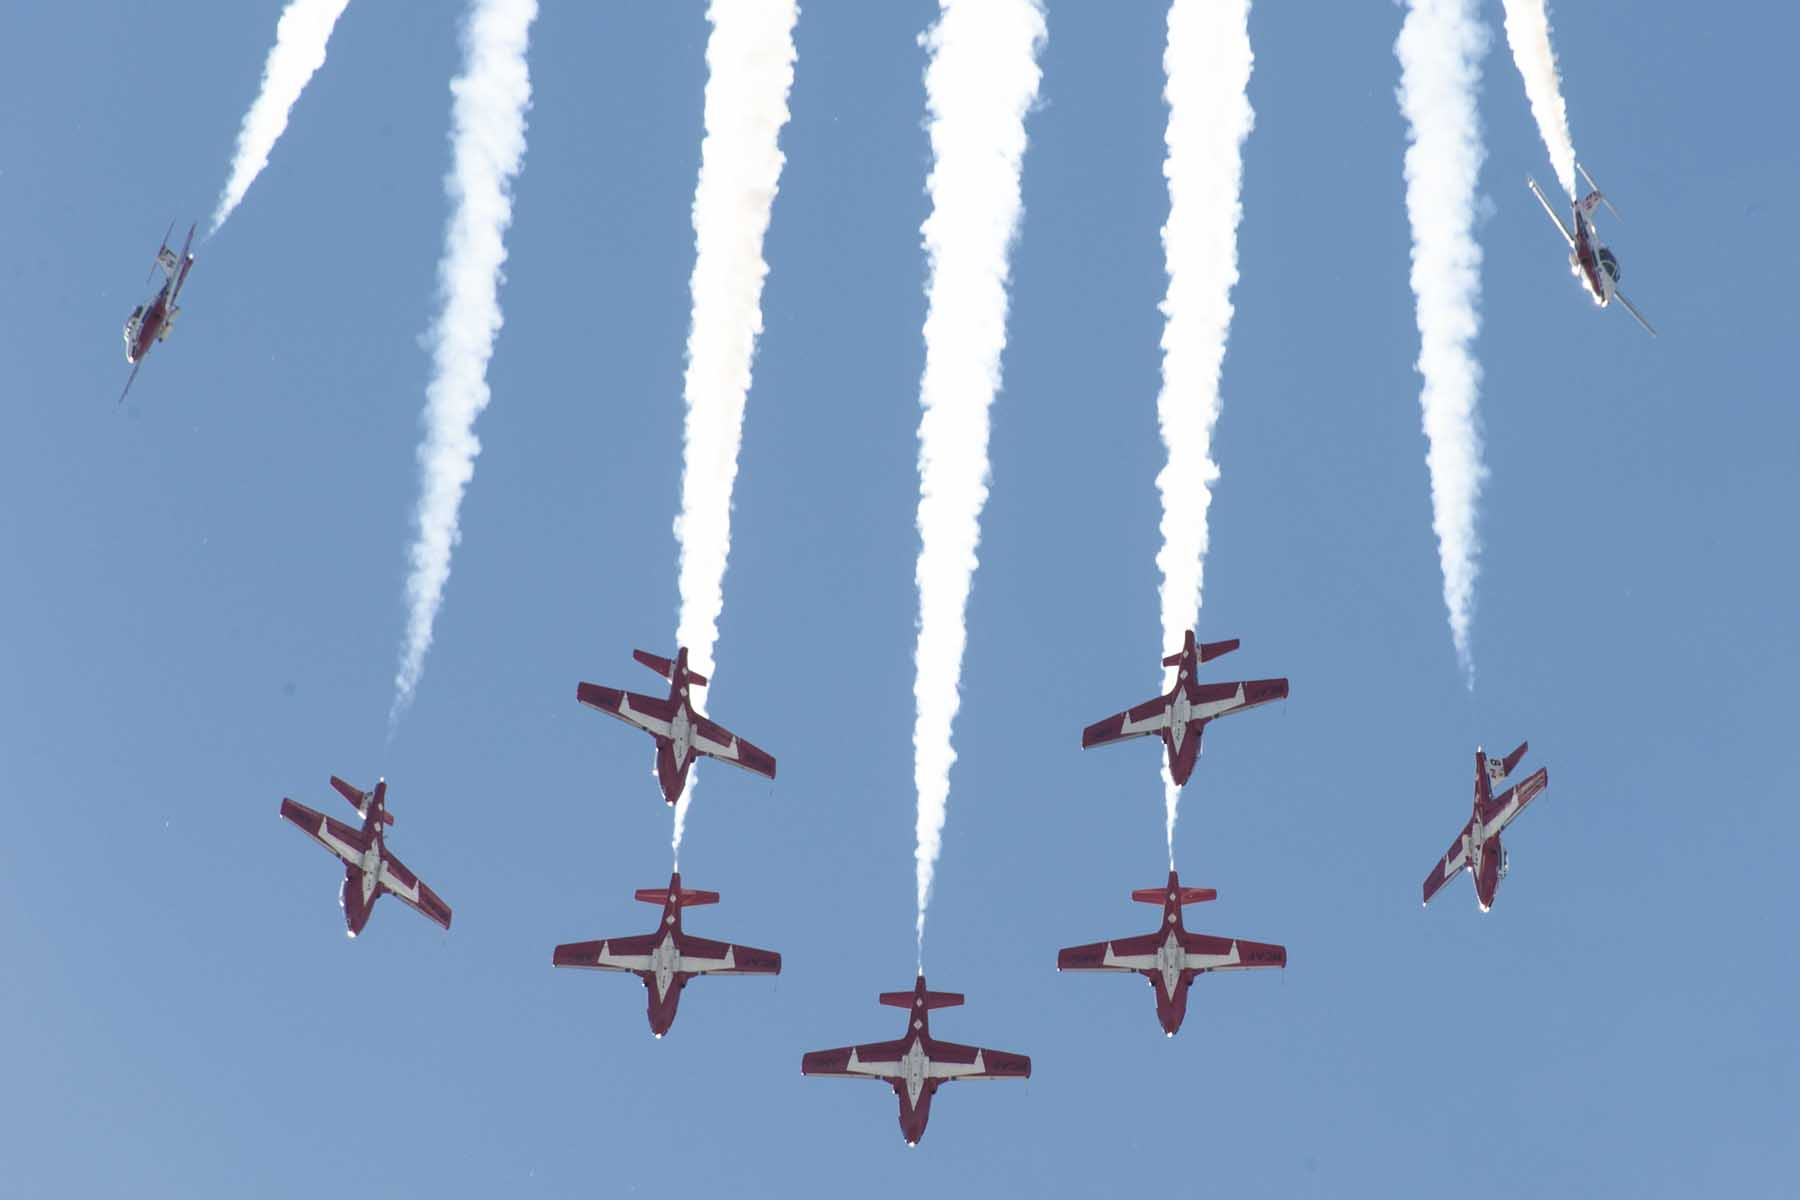 Canadian Forces Snowbirds aircraft diving straight down and trailing smoke